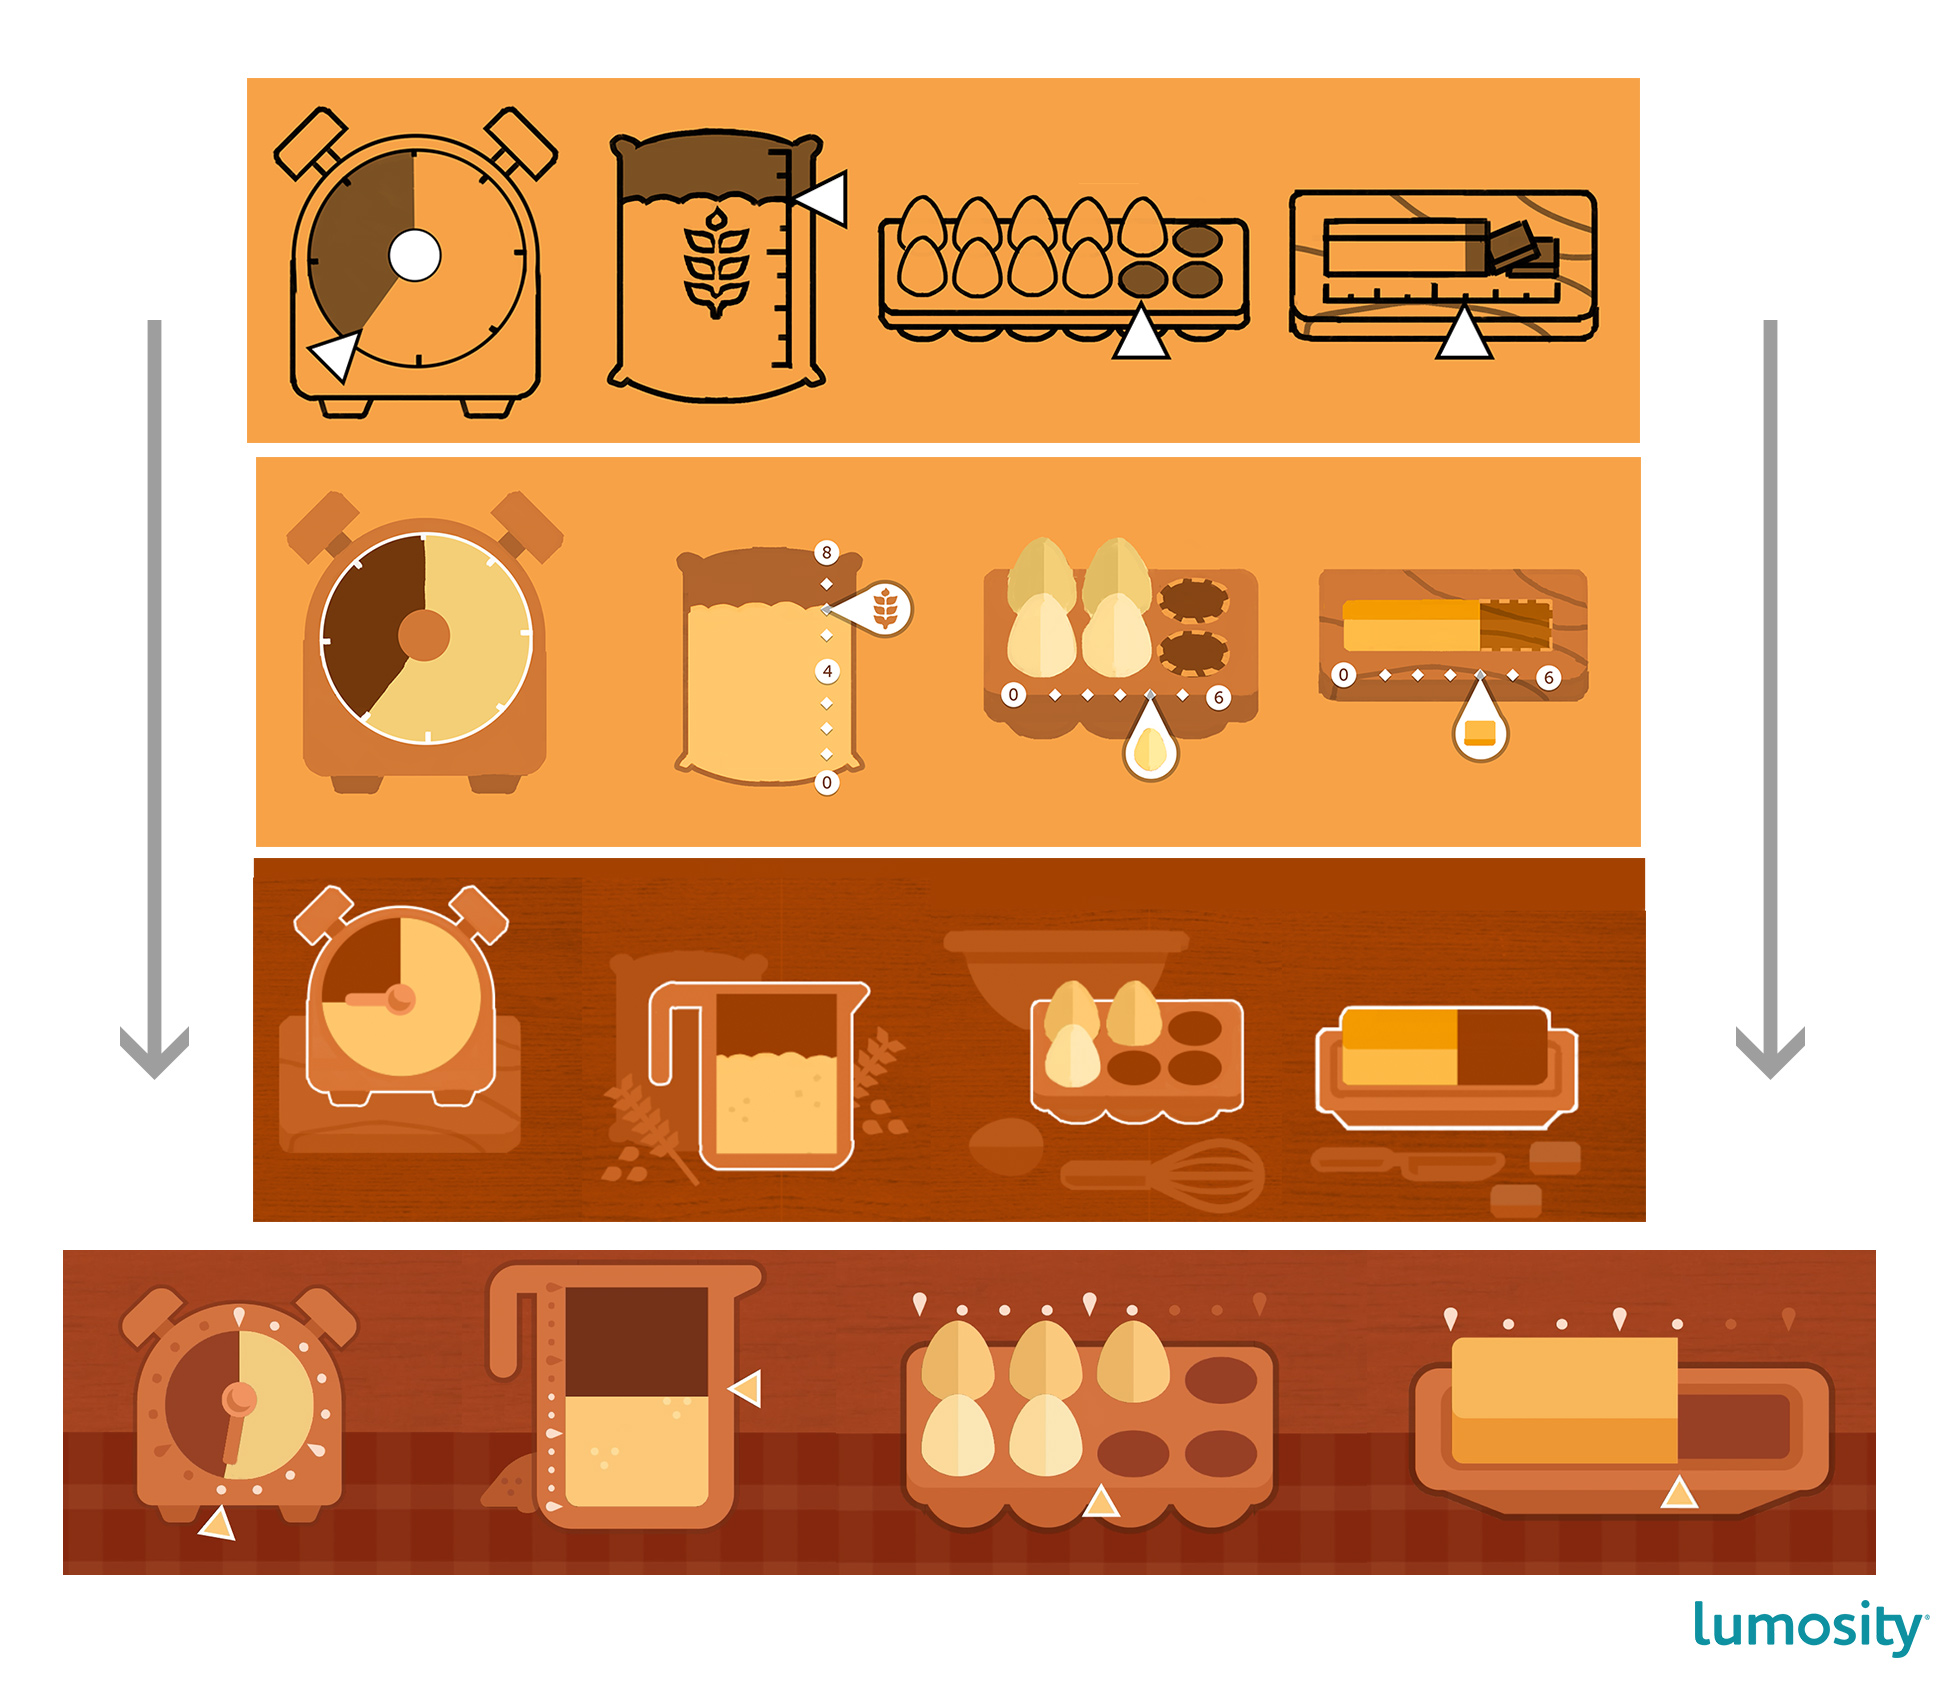 UI design for the measuring utensils.